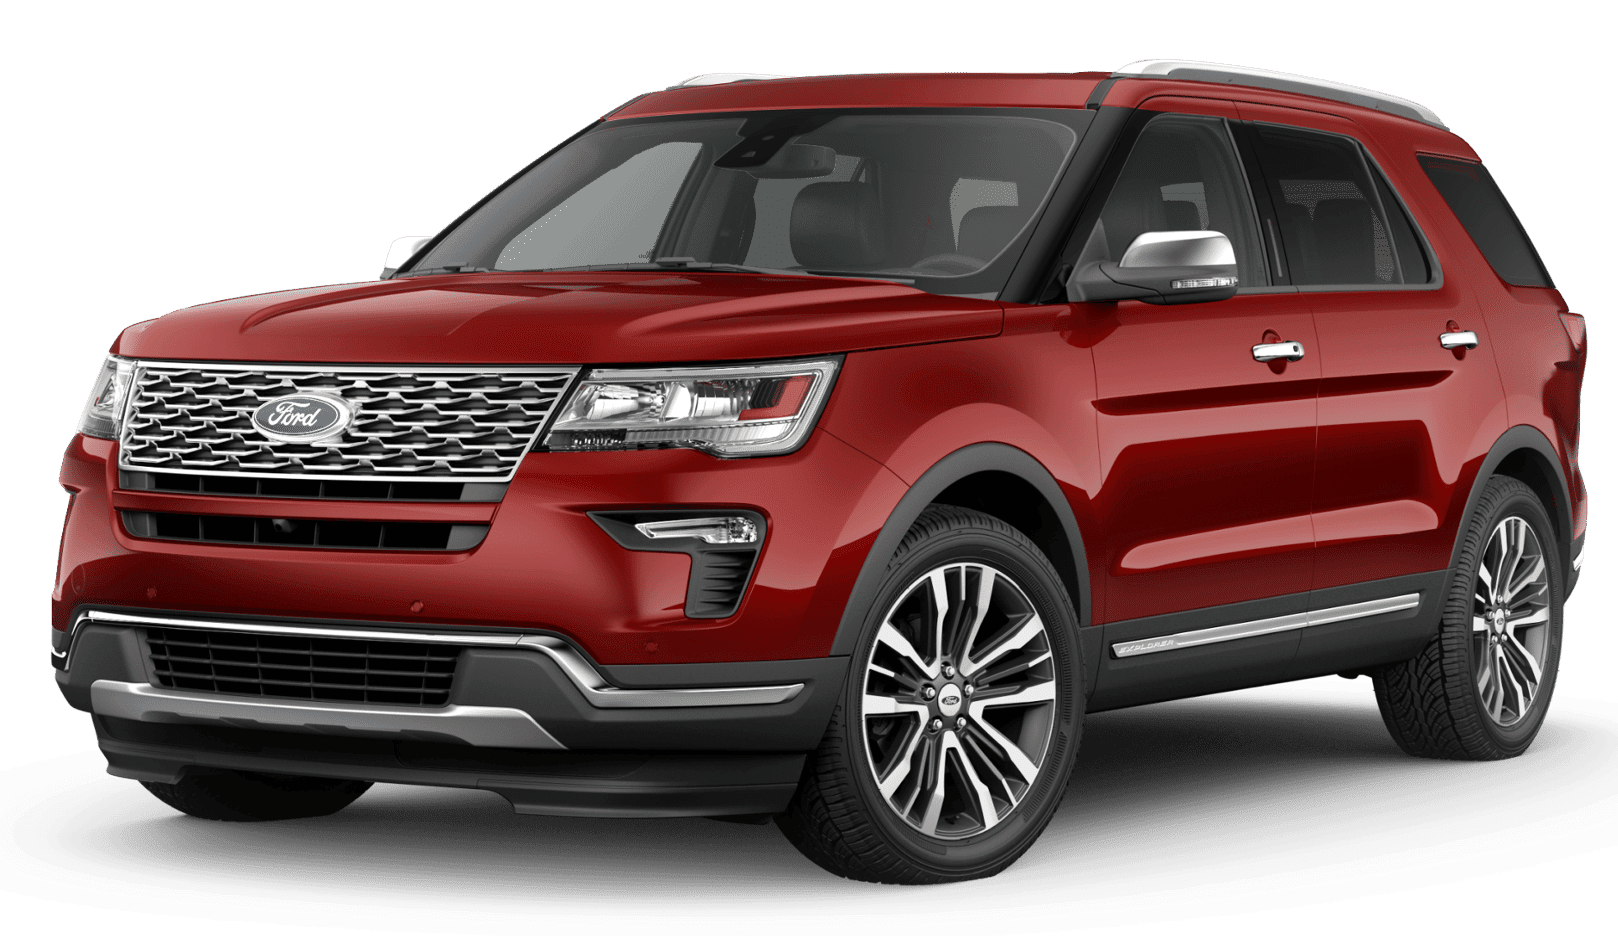 2019 Ford Explorer 1.5L SEL Price in UAE, Specs & Review ...